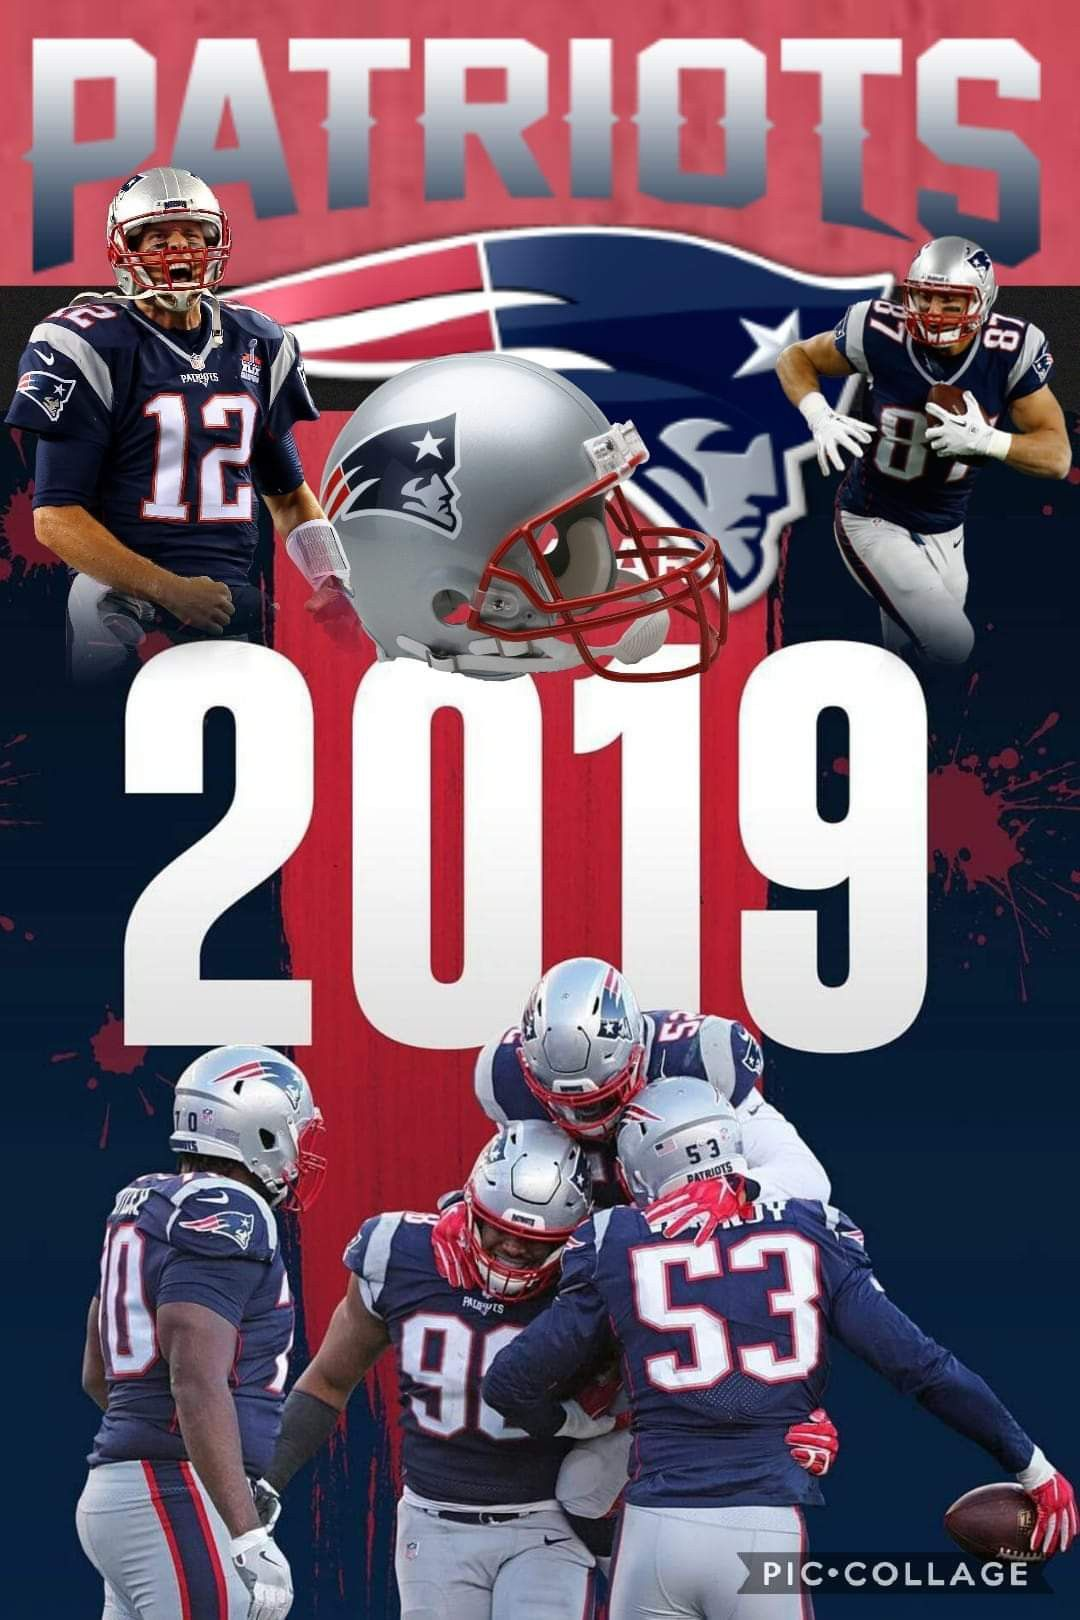 Nep Baby 2019 Repost By Pulseroll The Leaders In Vibrating Training Recovery New England Patriots New England Patriots Football New England Patroits